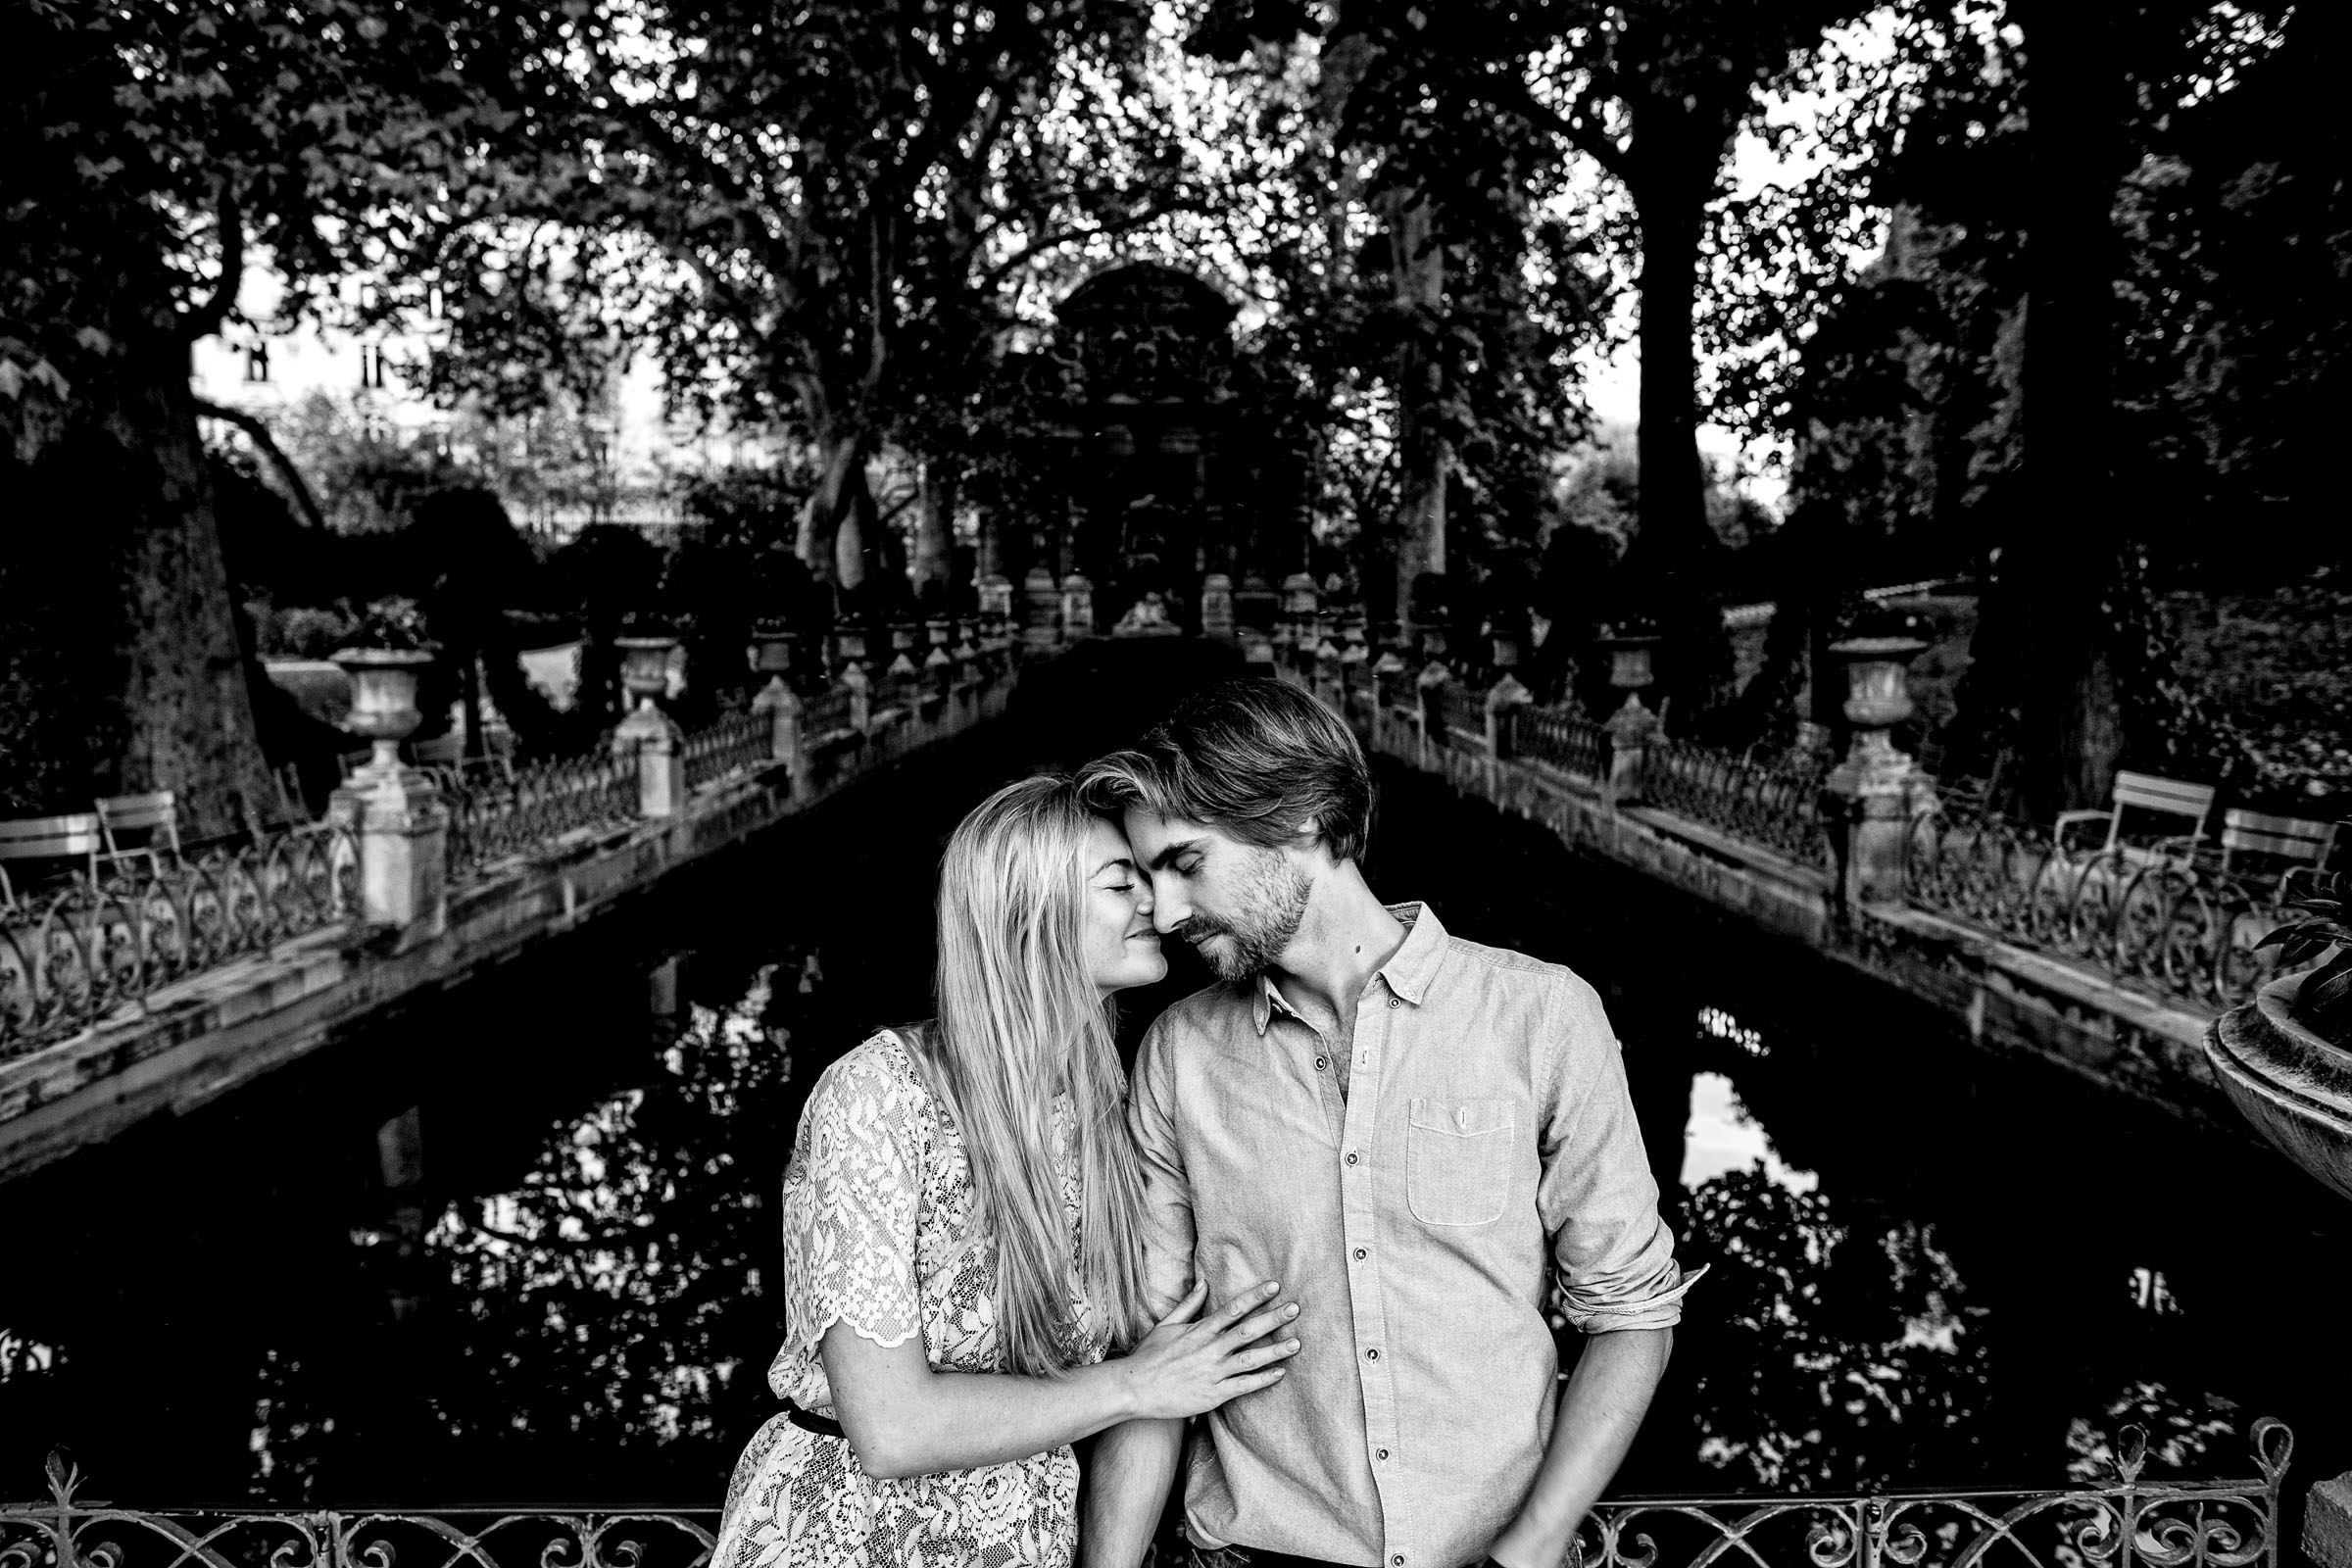 A peaceful moment of connection during Faye and David's Montmartre Paris Engagement date in the Luxembourg Gardens.